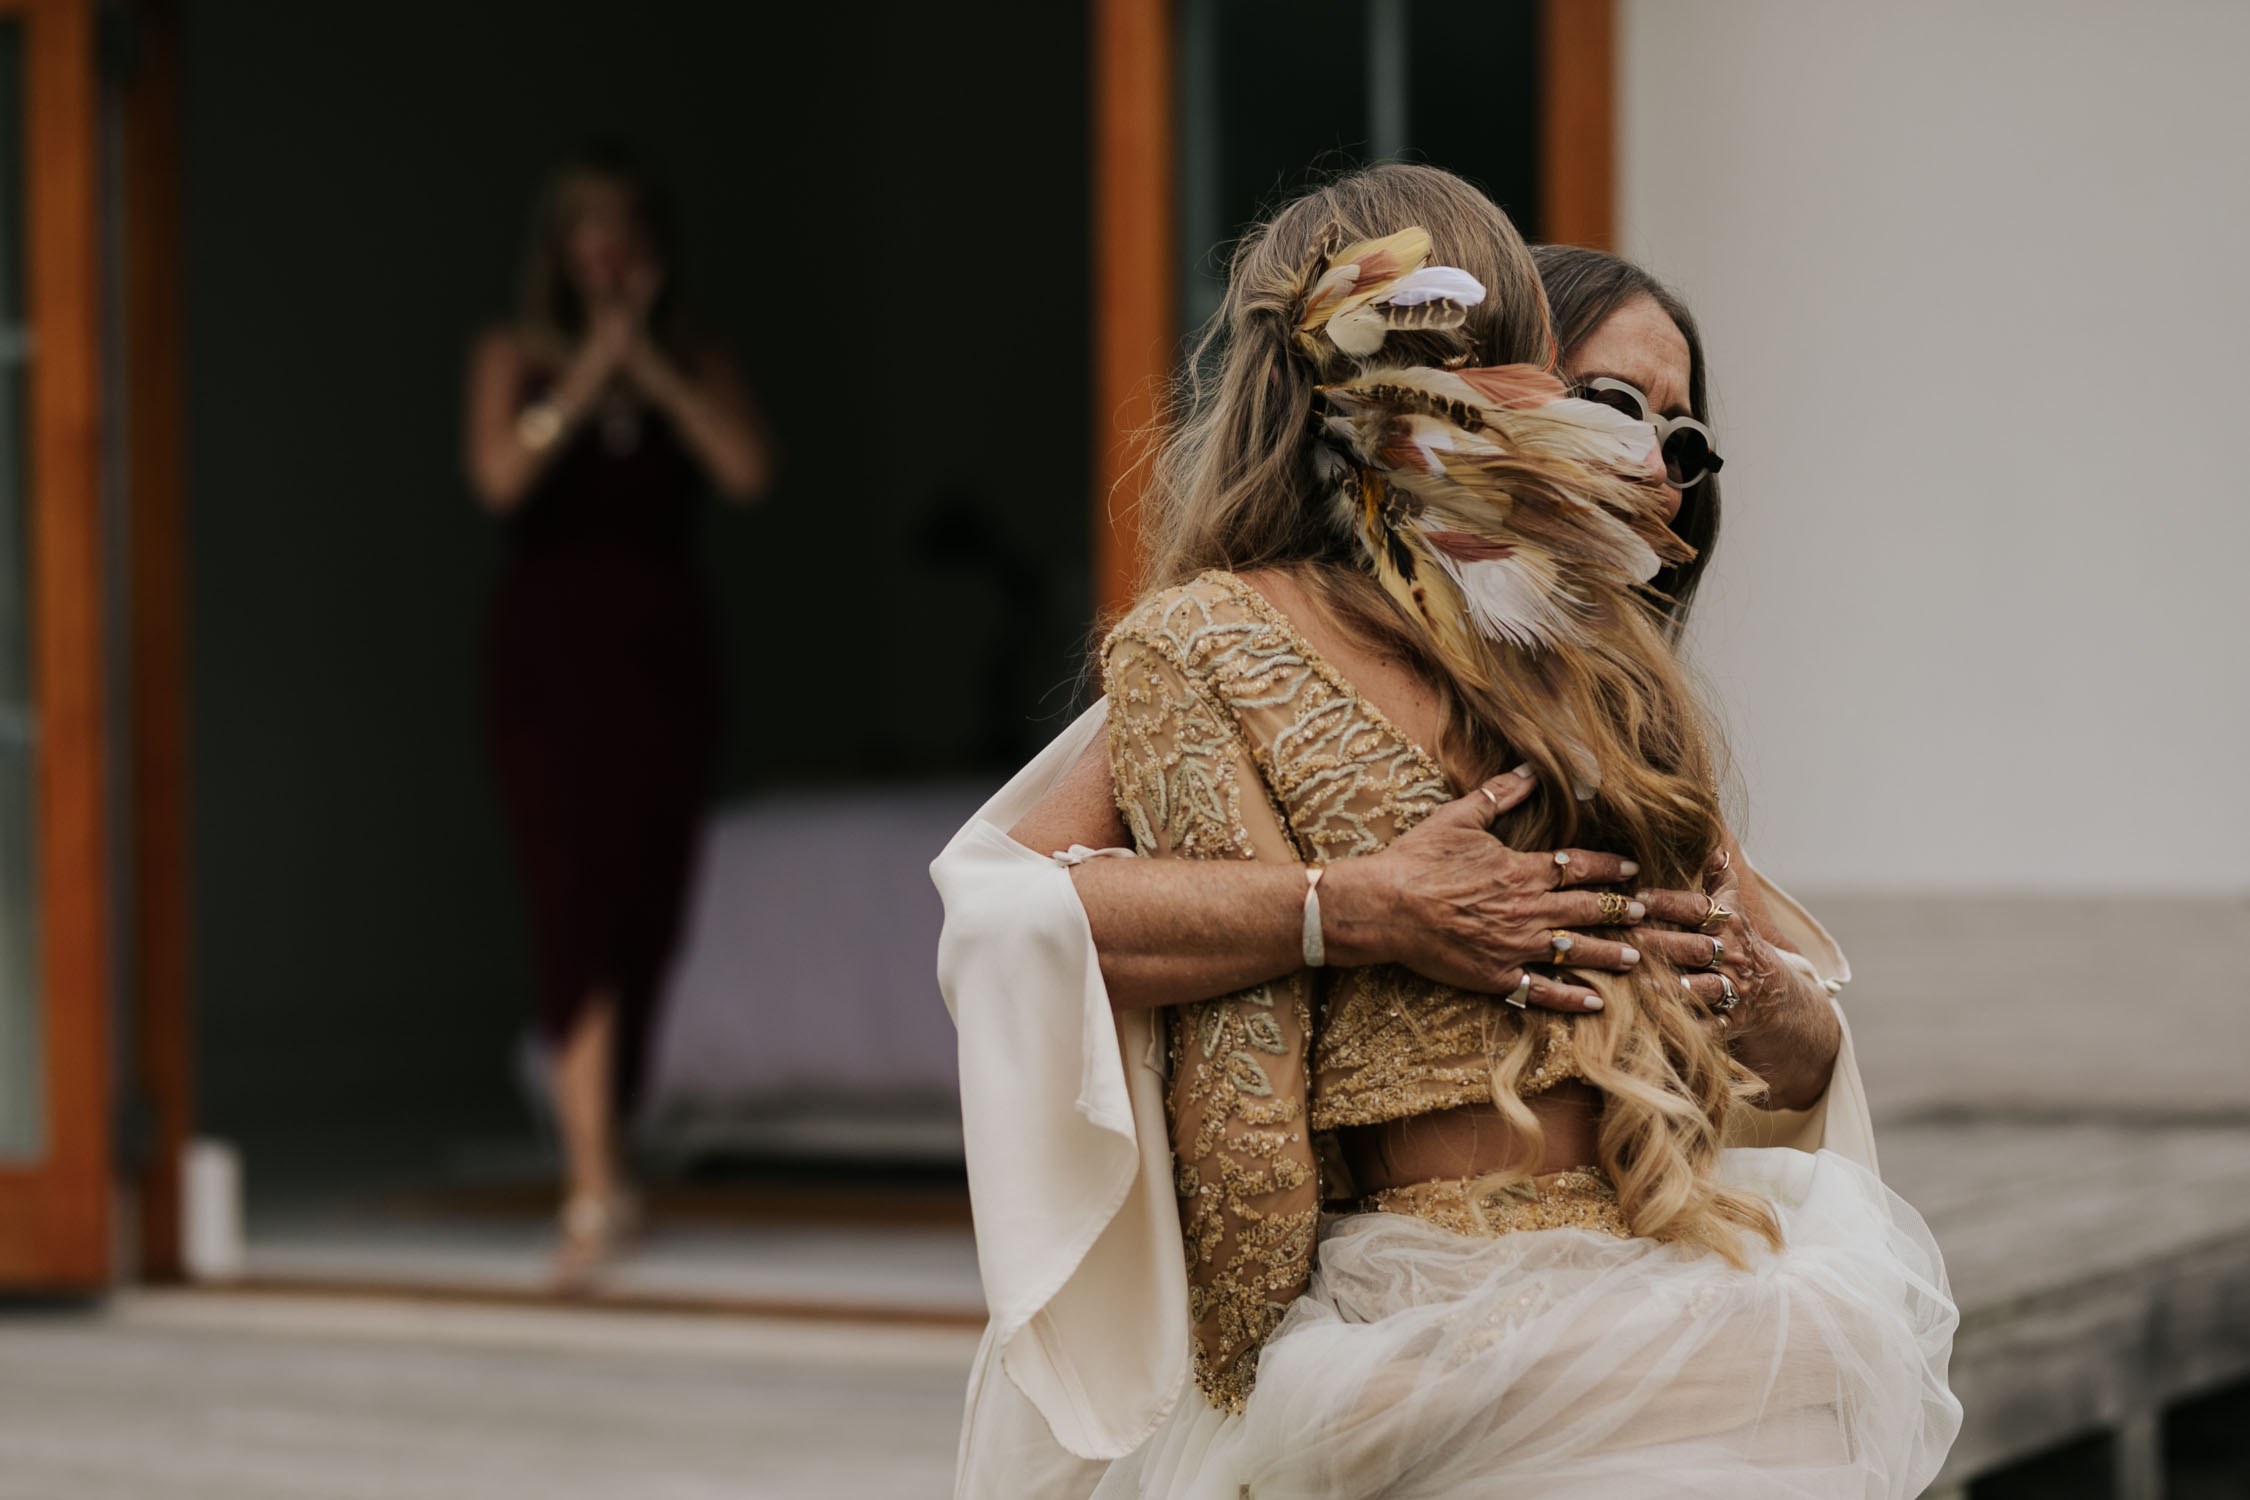 Bohemian bride with long curly blonde hair wears two piece gold and cream long sleeve wedding dress and feathers and plait in her hair hugs her mother in law